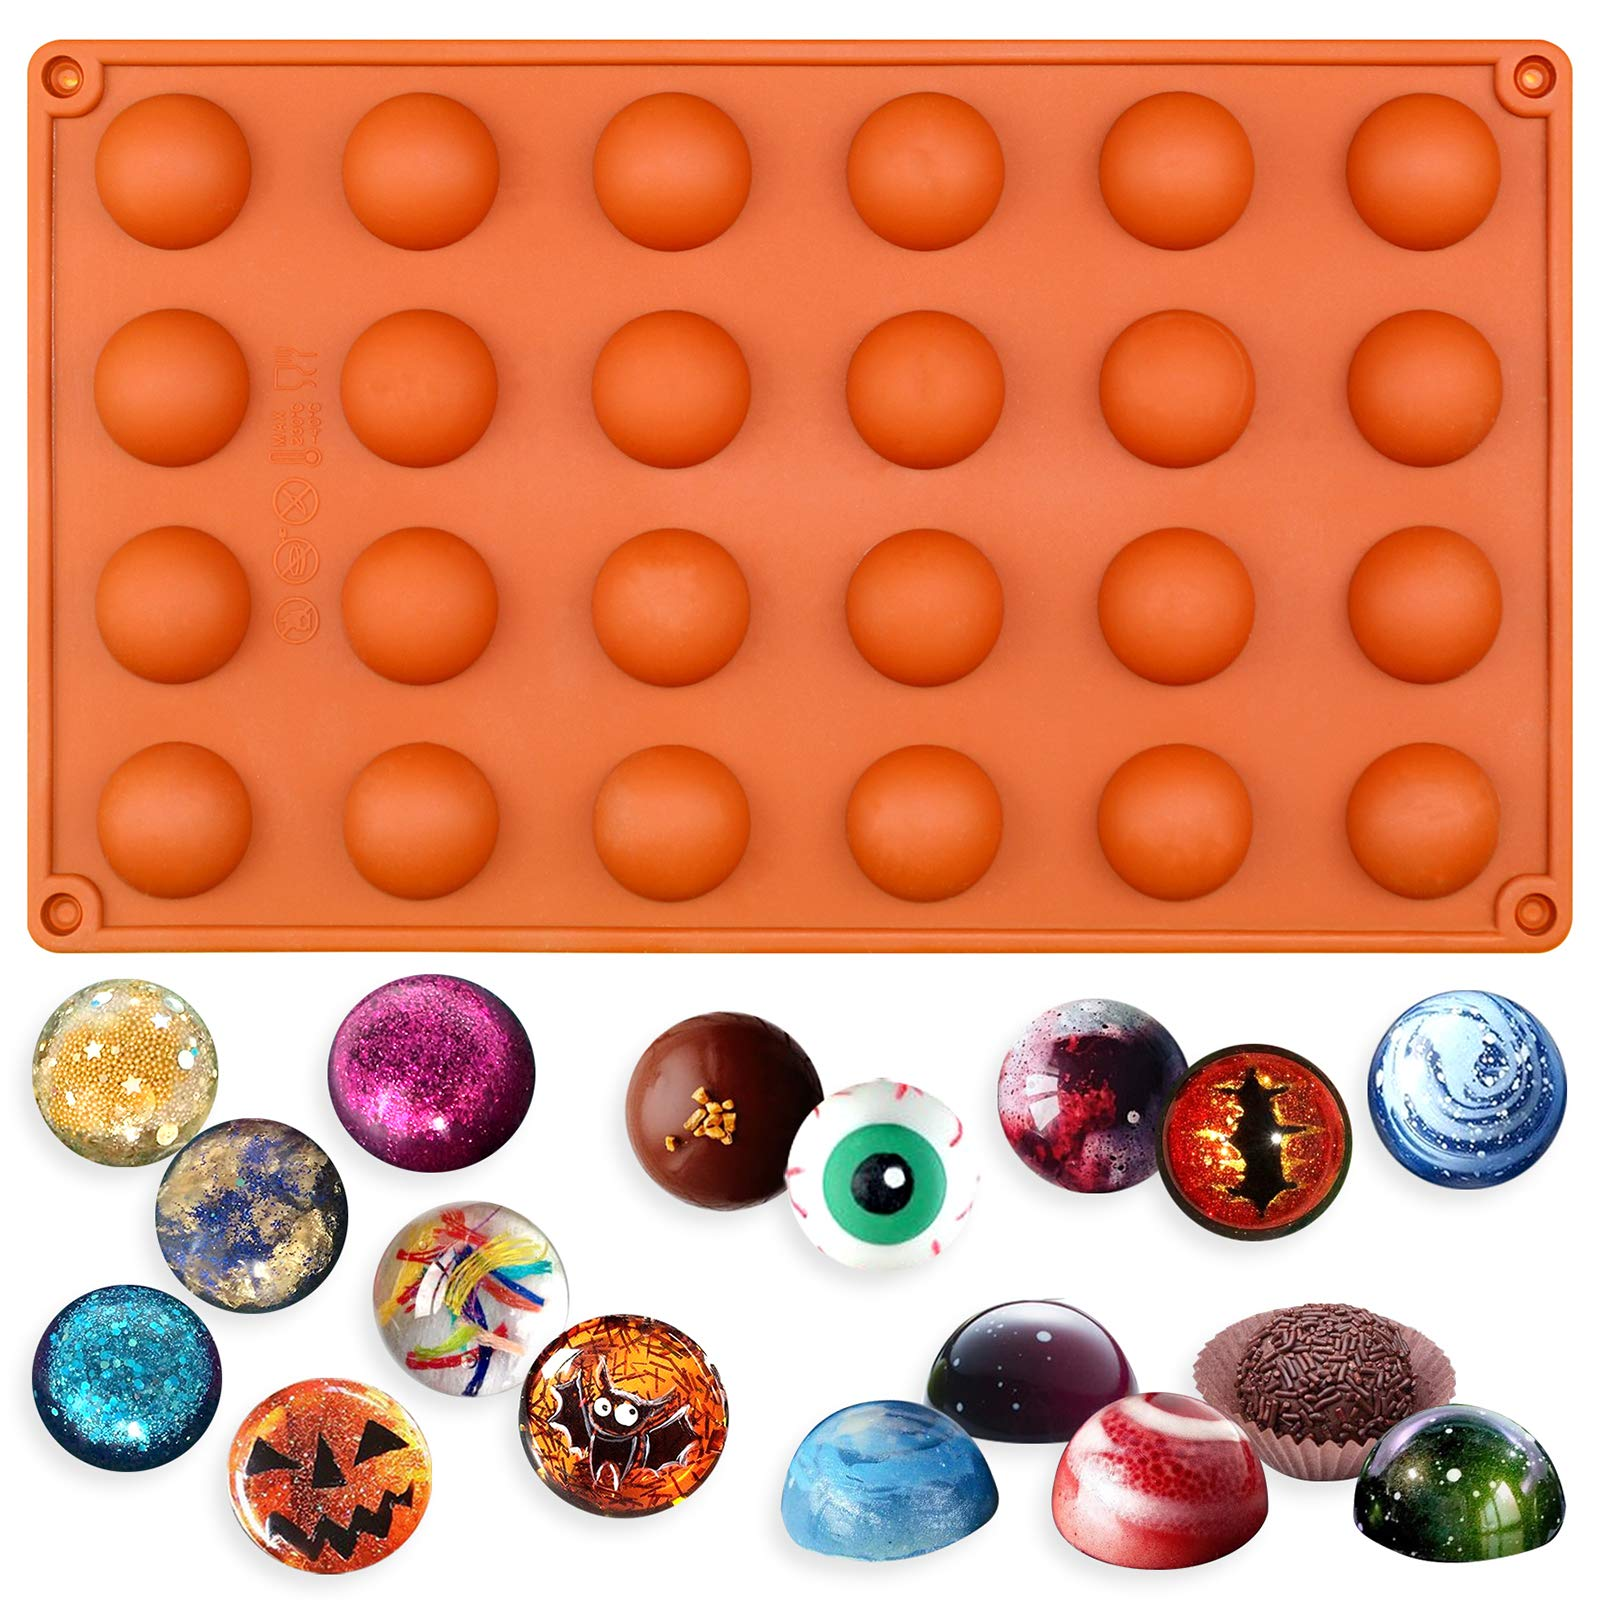 Funshowcase Mini Semi Sphere Half Round Silicone Mold Cookie Chocolate Teacake Fondant Candy Icing Tray